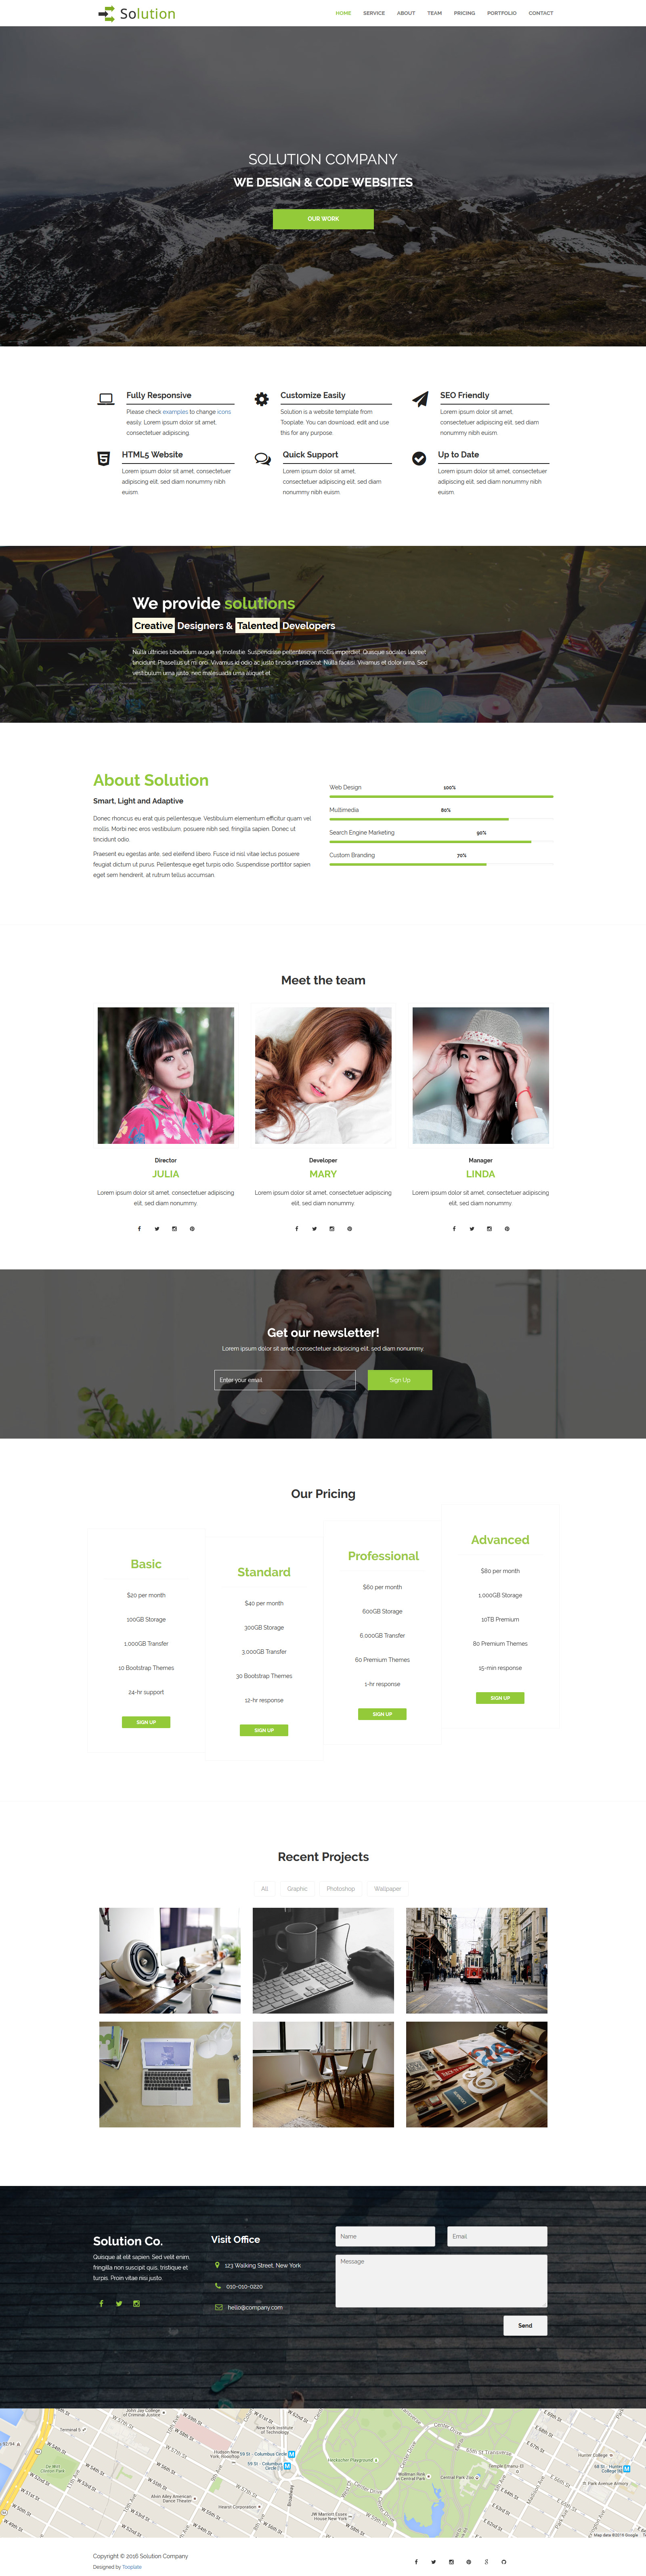 Solution HTML Template